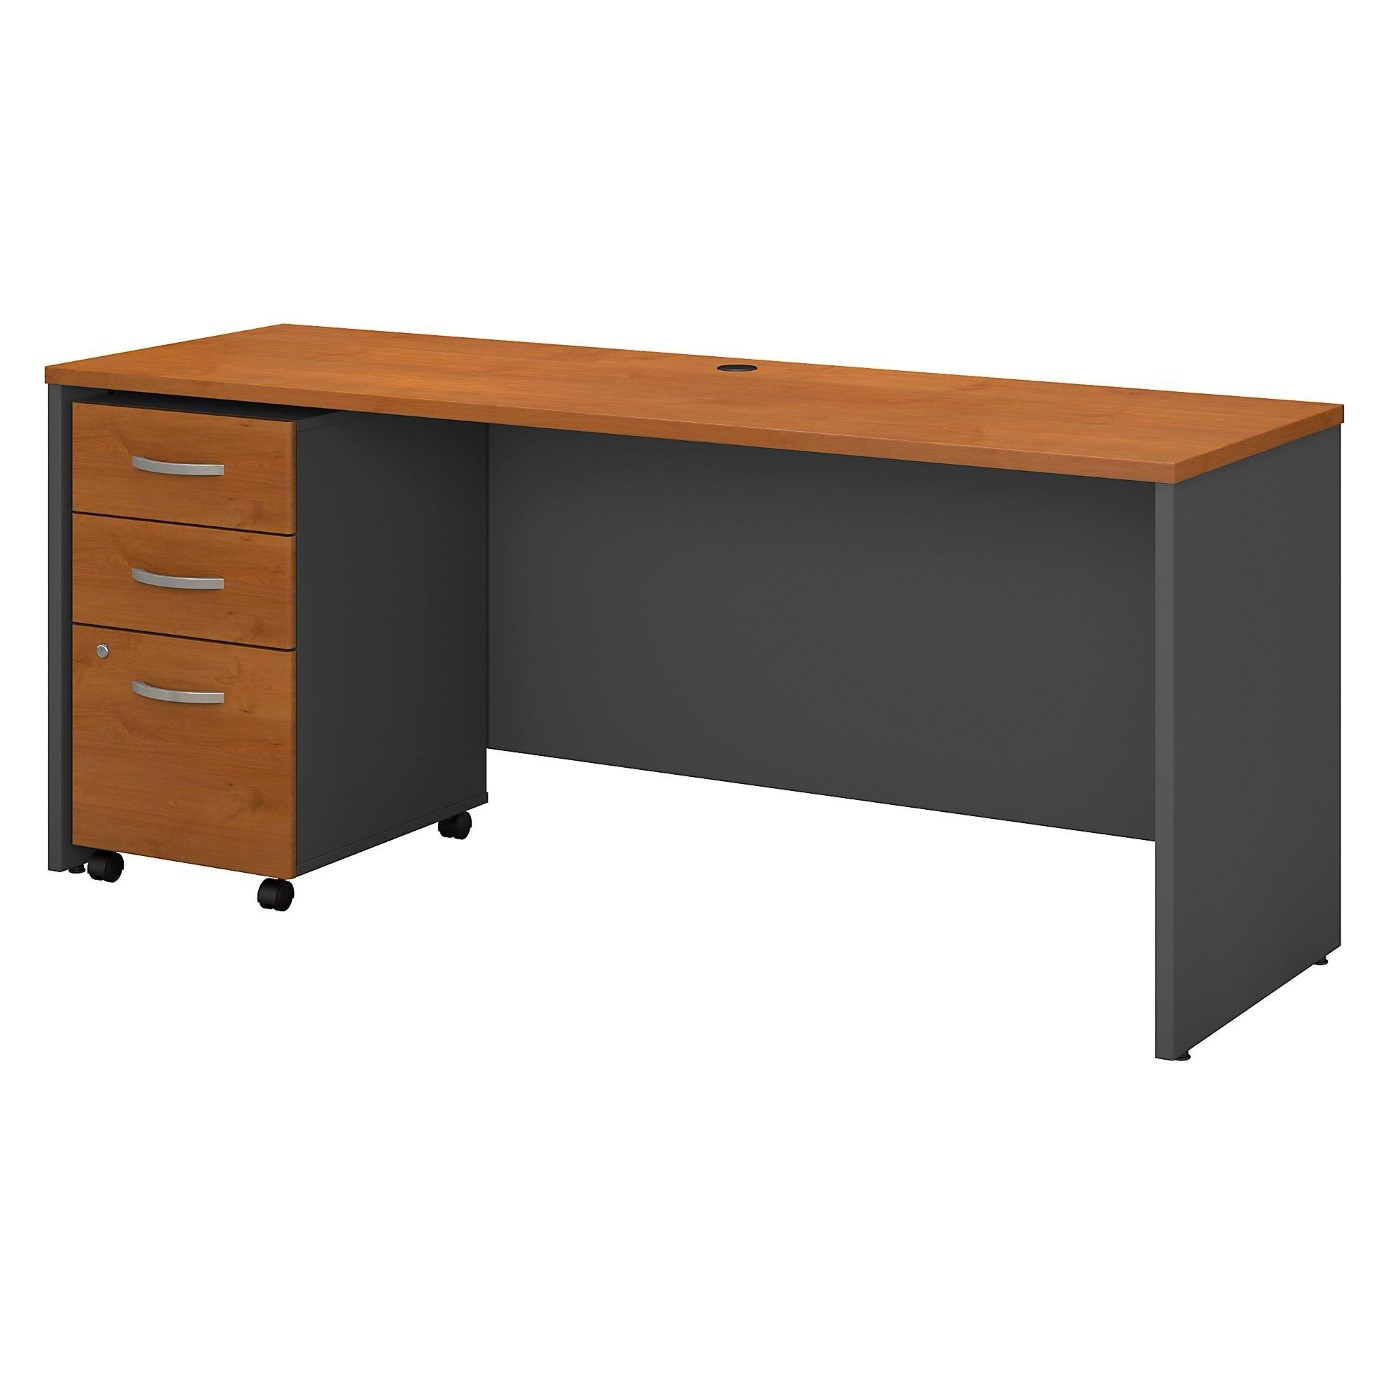 BUSH BUSINESS FURNITURE SERIES C 72W X 24D OFFICE DESK WITH MOBILE FILE CABINET. FREE SHIPPING  VIDEO BELOW.